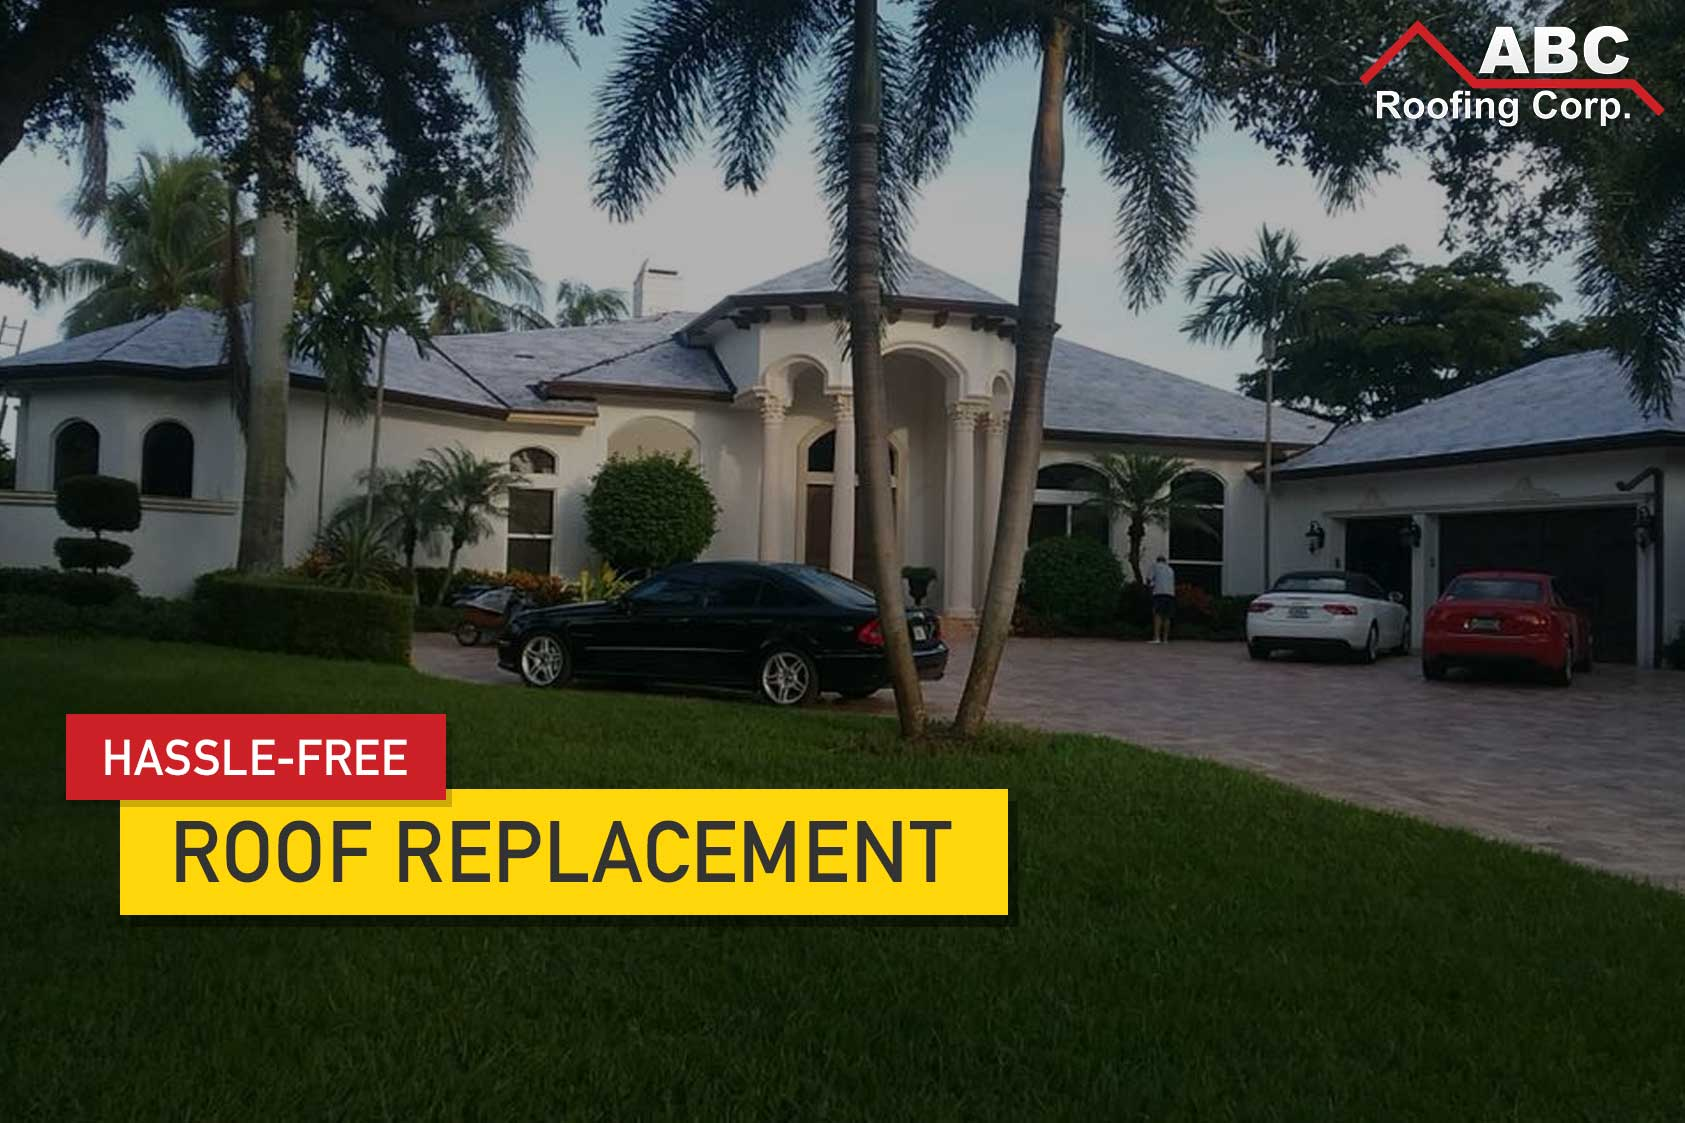 Hassle-Free Roof Replacement